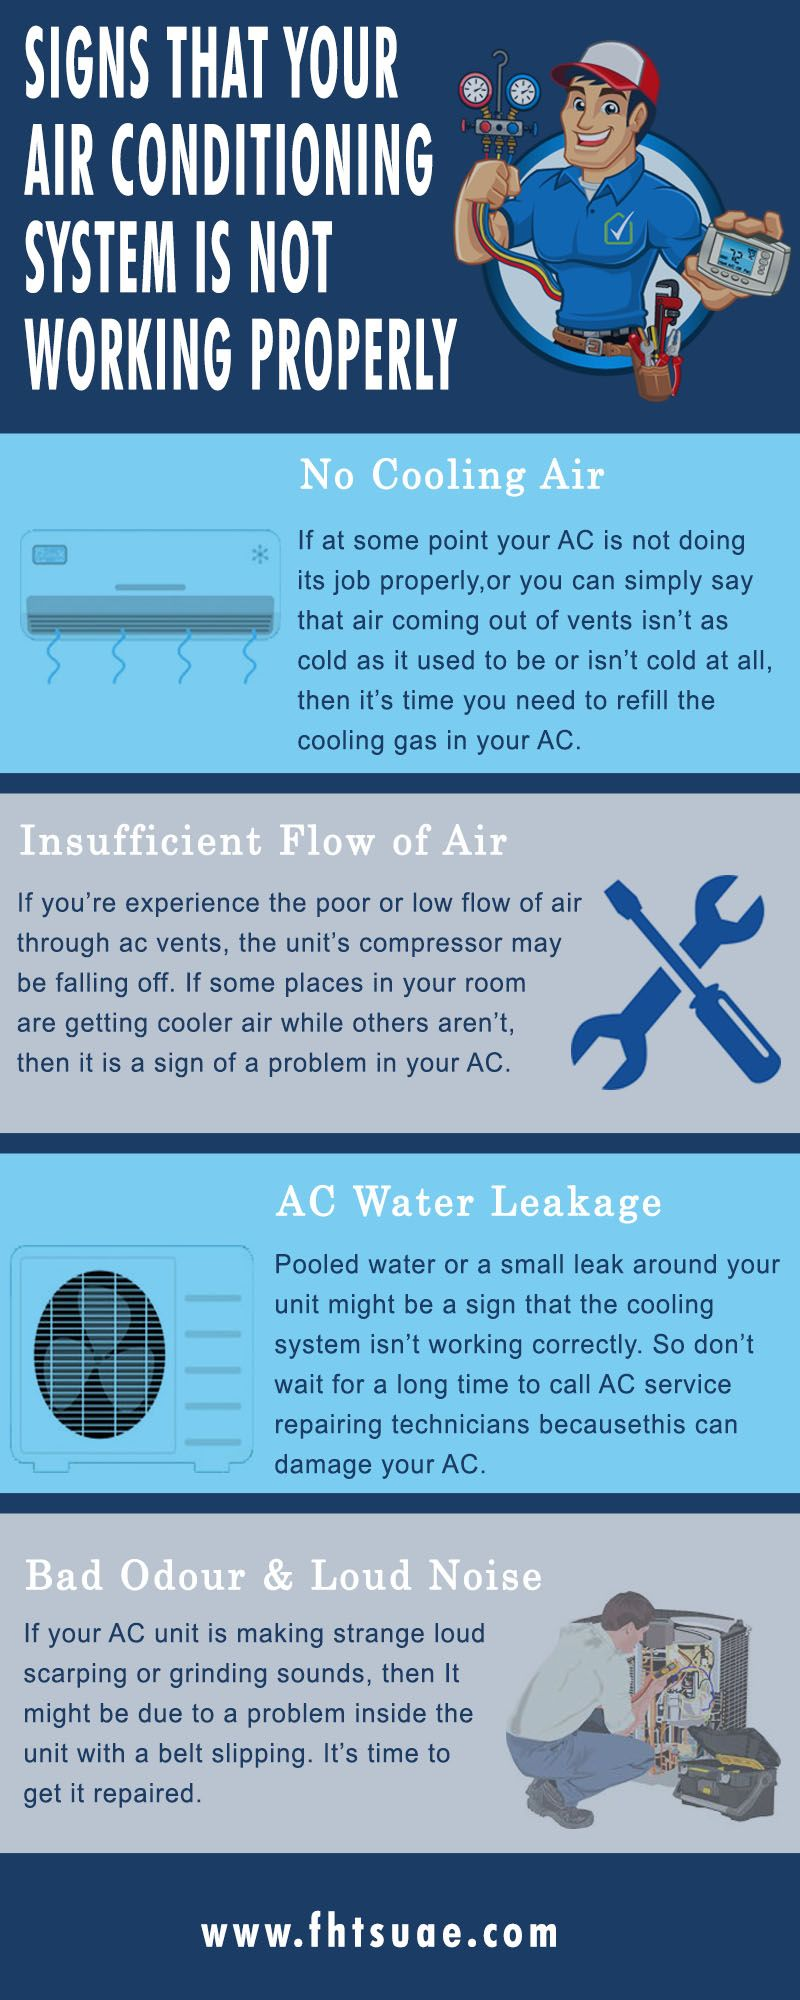 Signs That Your Air Conditioning System Is Not Working Properly